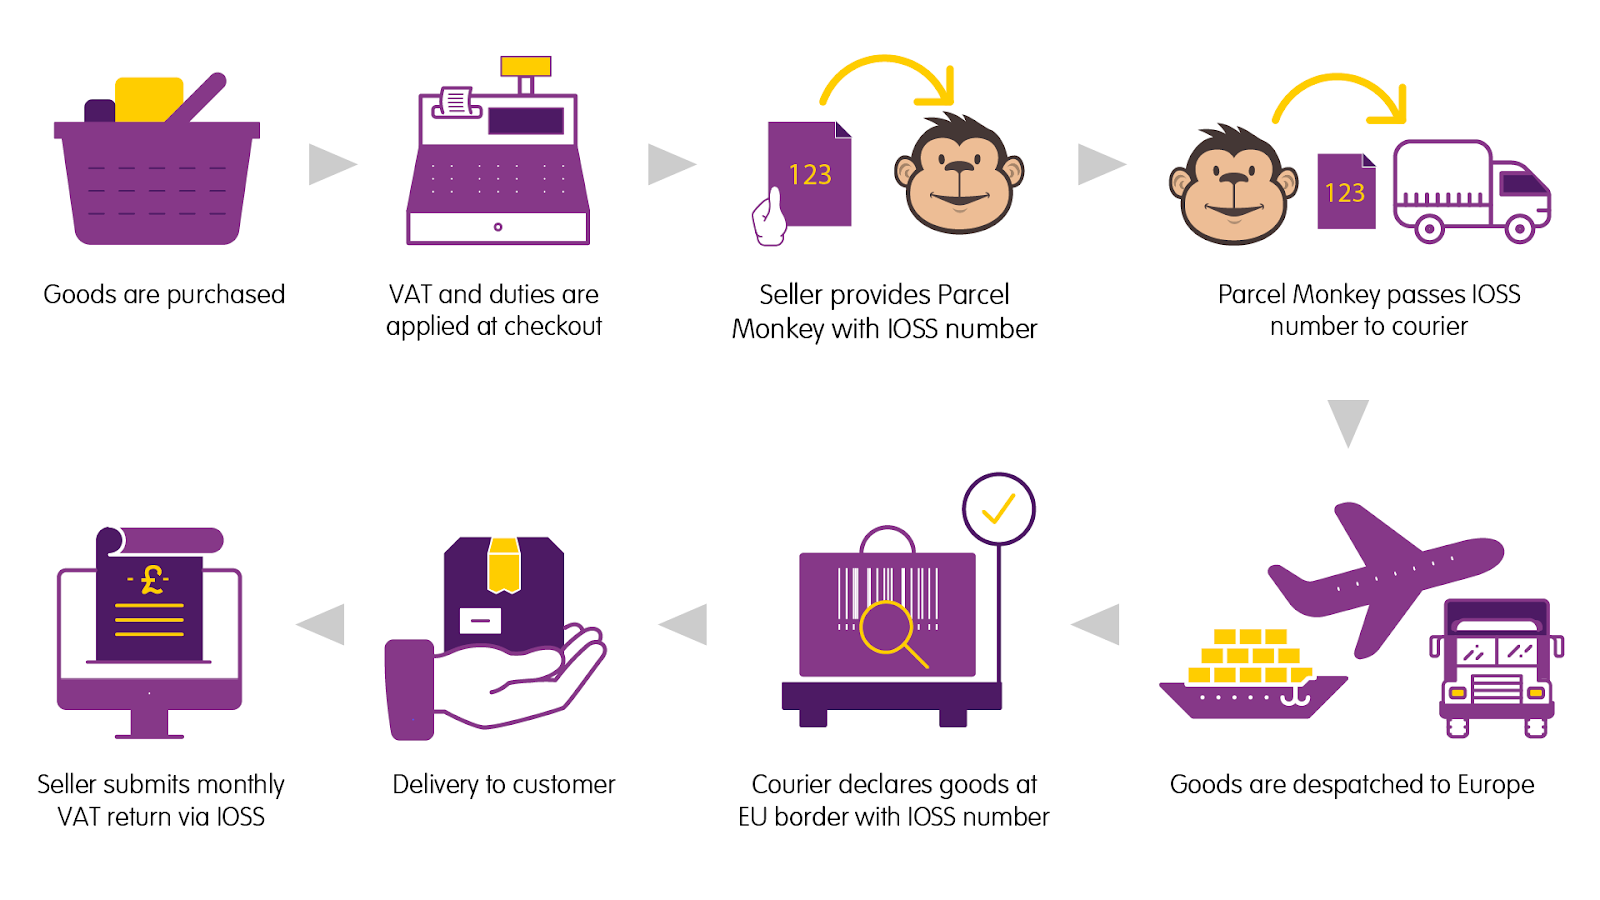 IOSS process with Parcel Monkey